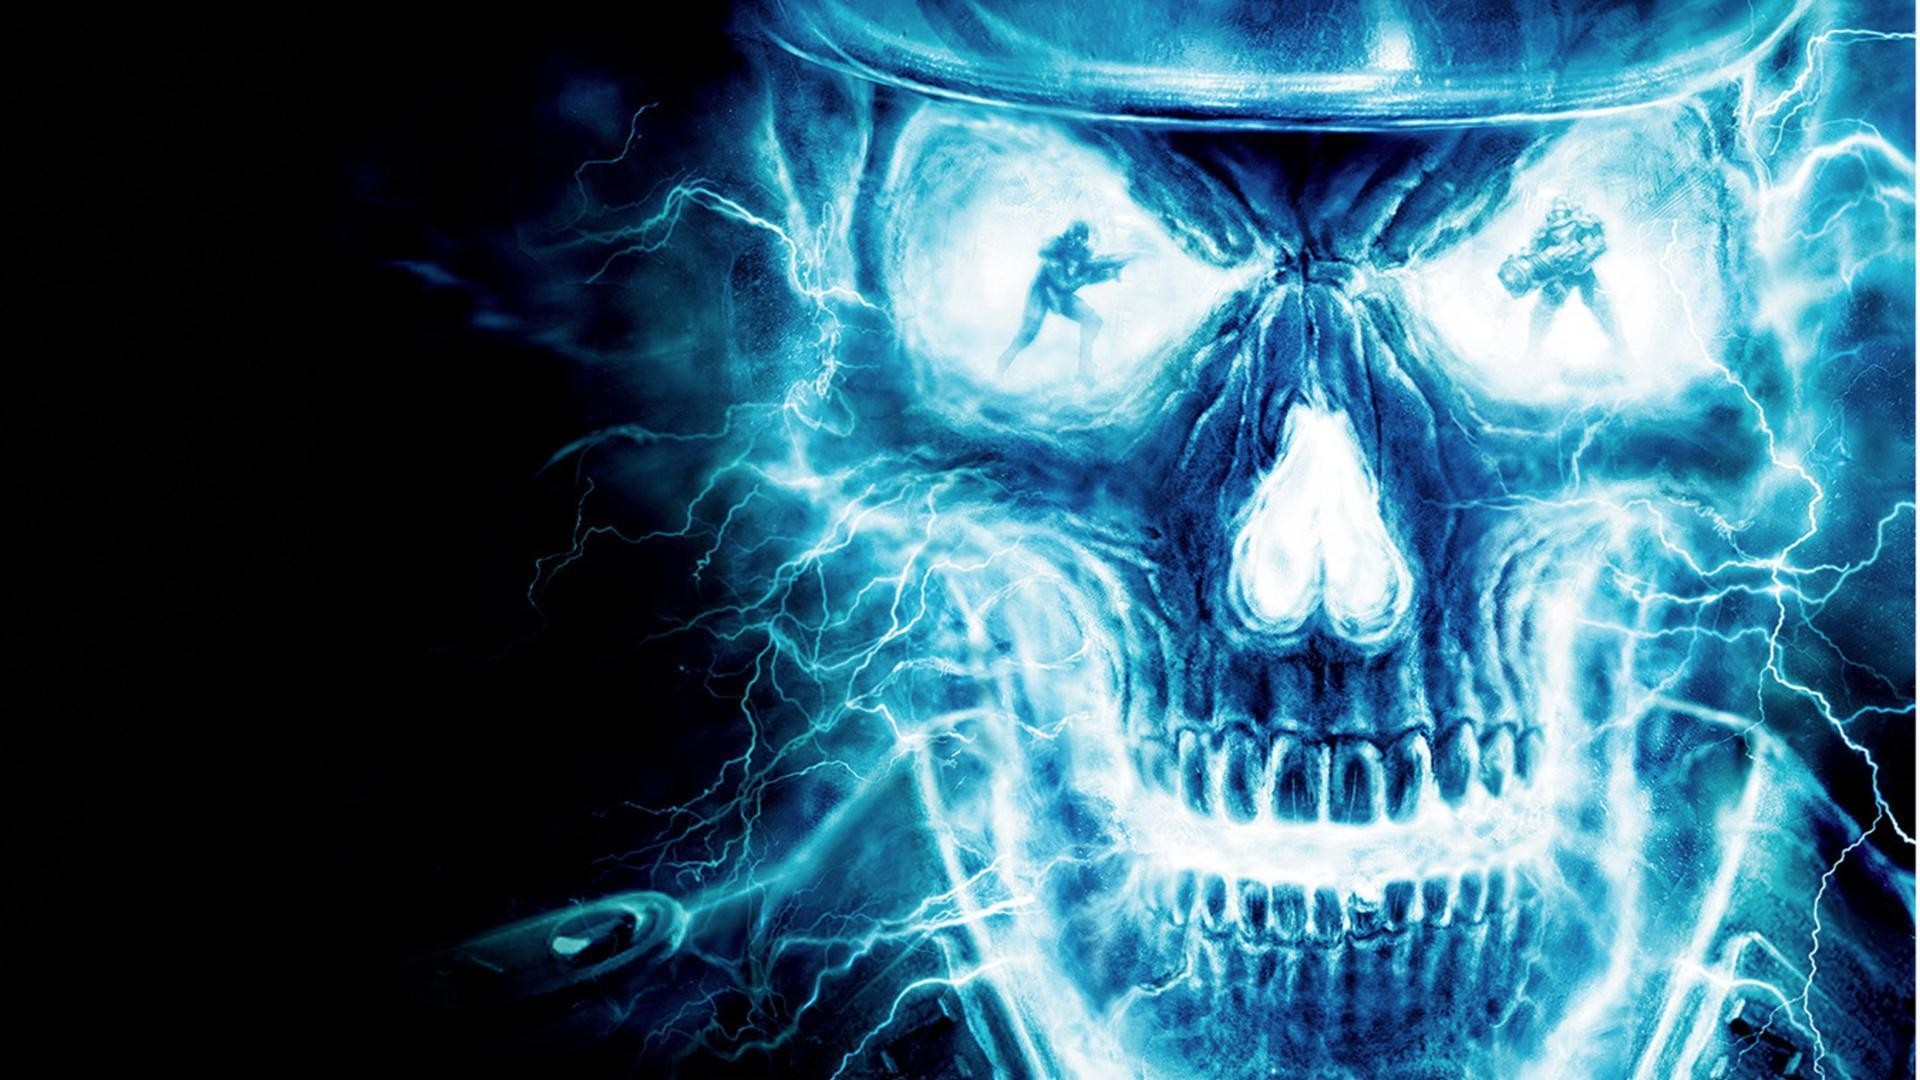 Fire Skull Wallpapers A a WallpaperTag